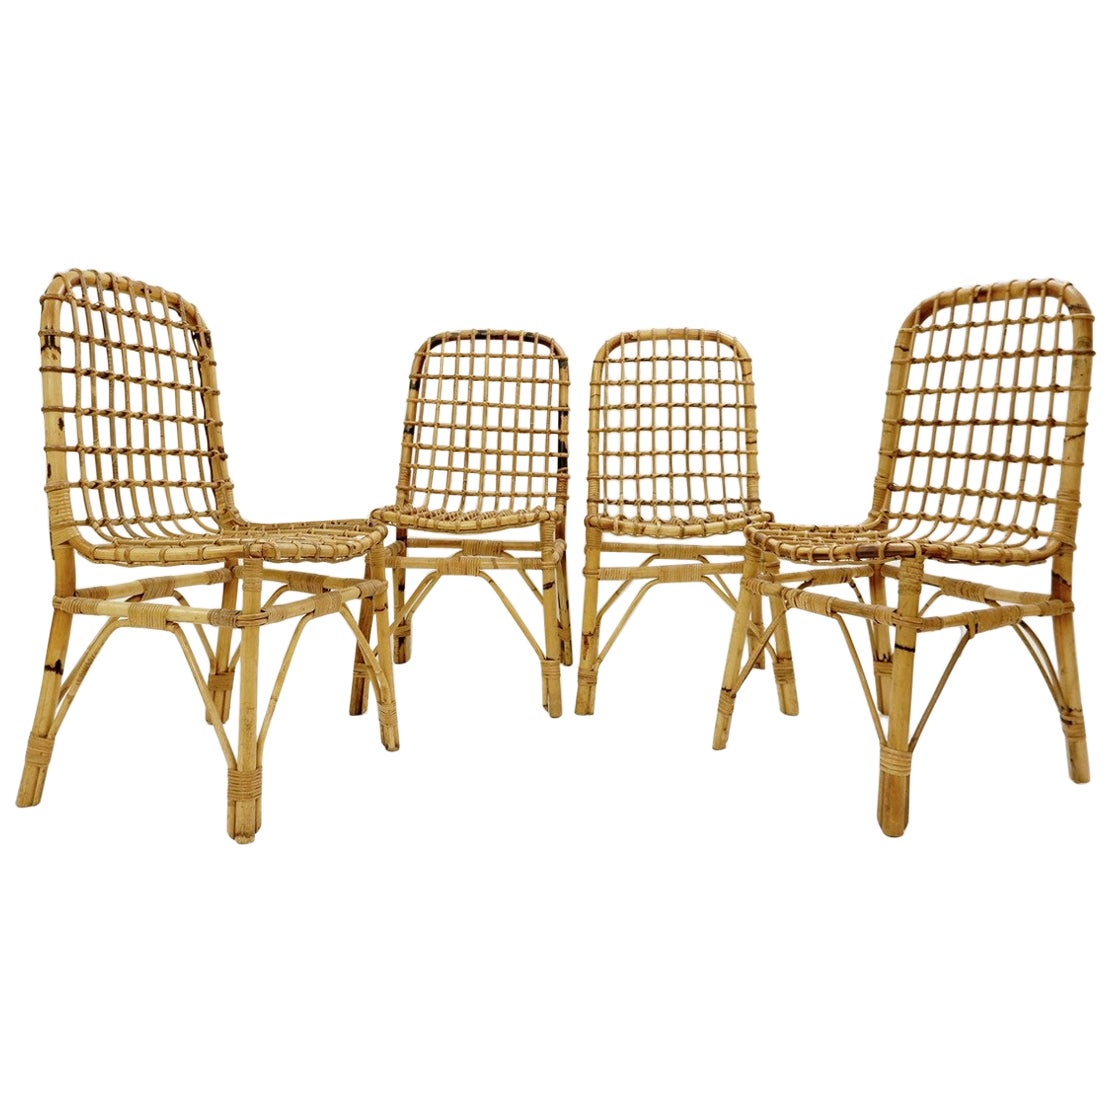 Set of 4 Rattan Chairs, 1960s